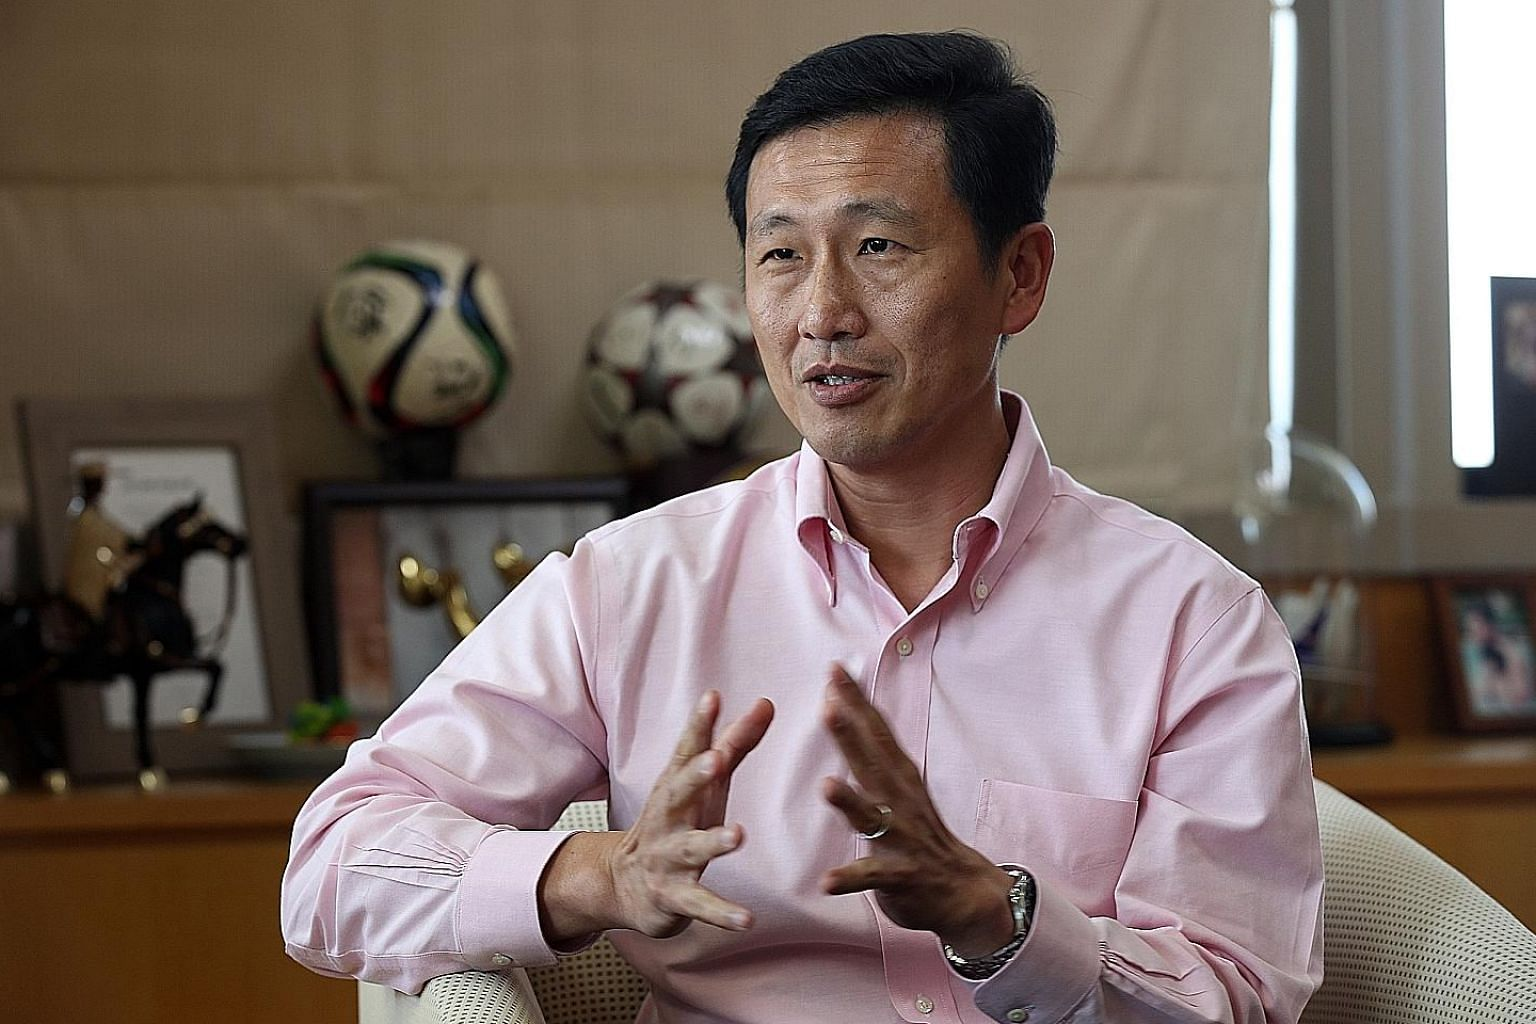 In his Annual Workplan Seminar speech to school leaders, Education Minister Ong Ye Kung explained how the move to home-based learning during the recent circuit-breaker period prompted the Ministry of Education to bring the National Digital Literacy P